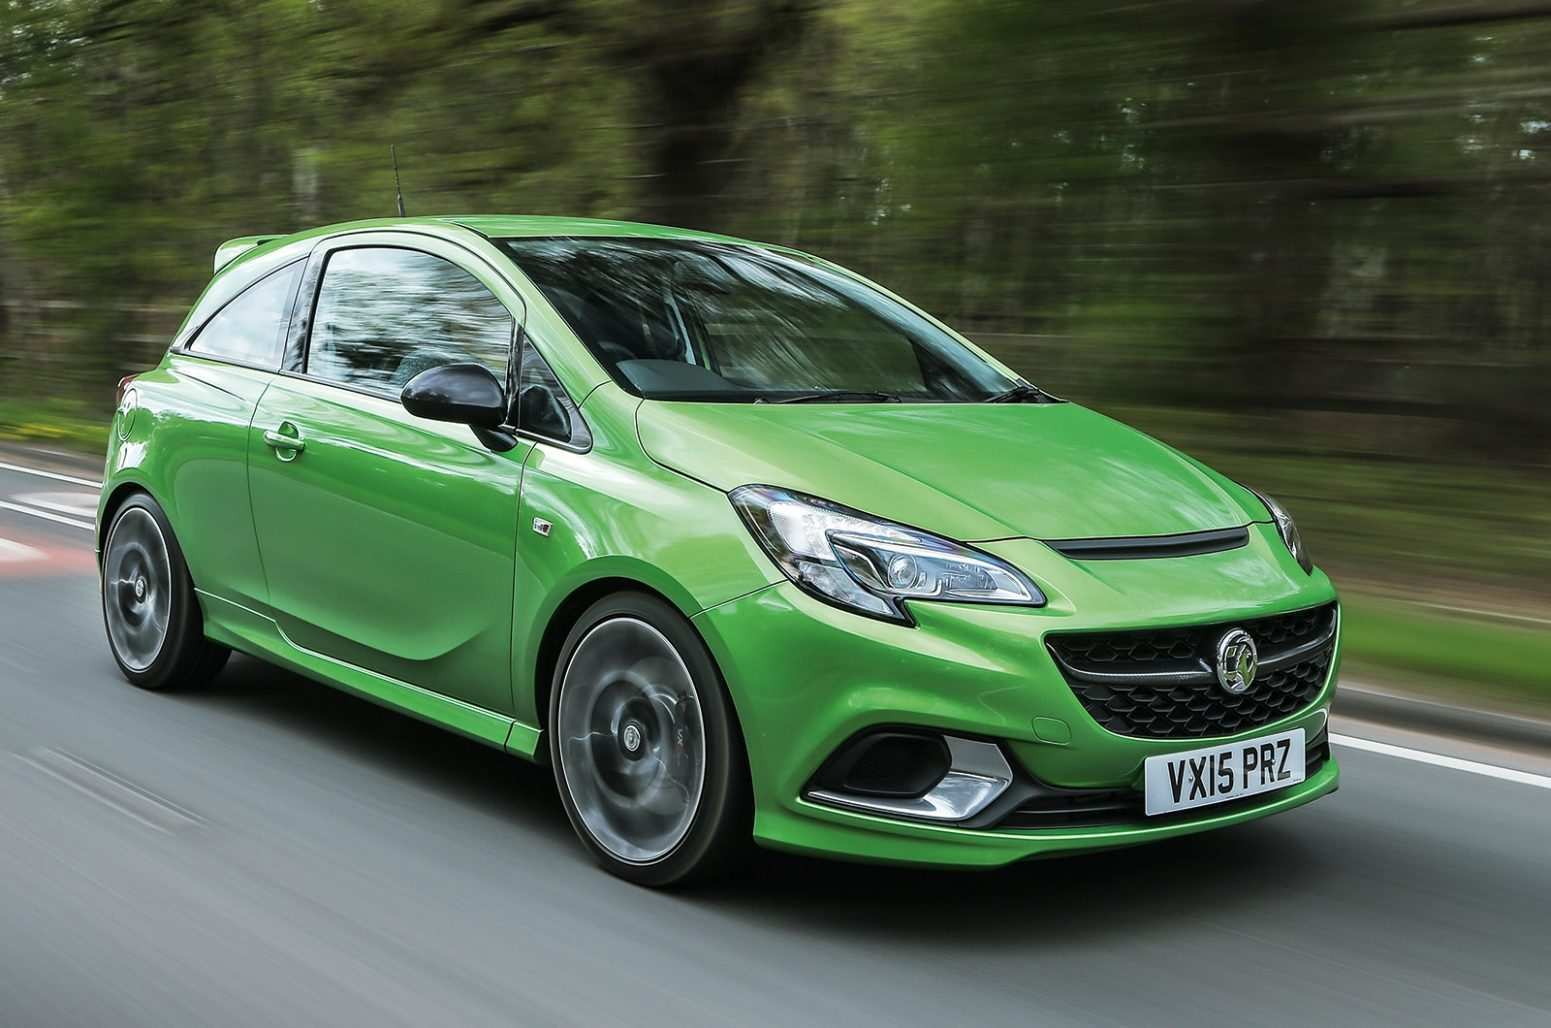 70 All New 2019 Opel Corsa New Concept with 2019 Opel Corsa